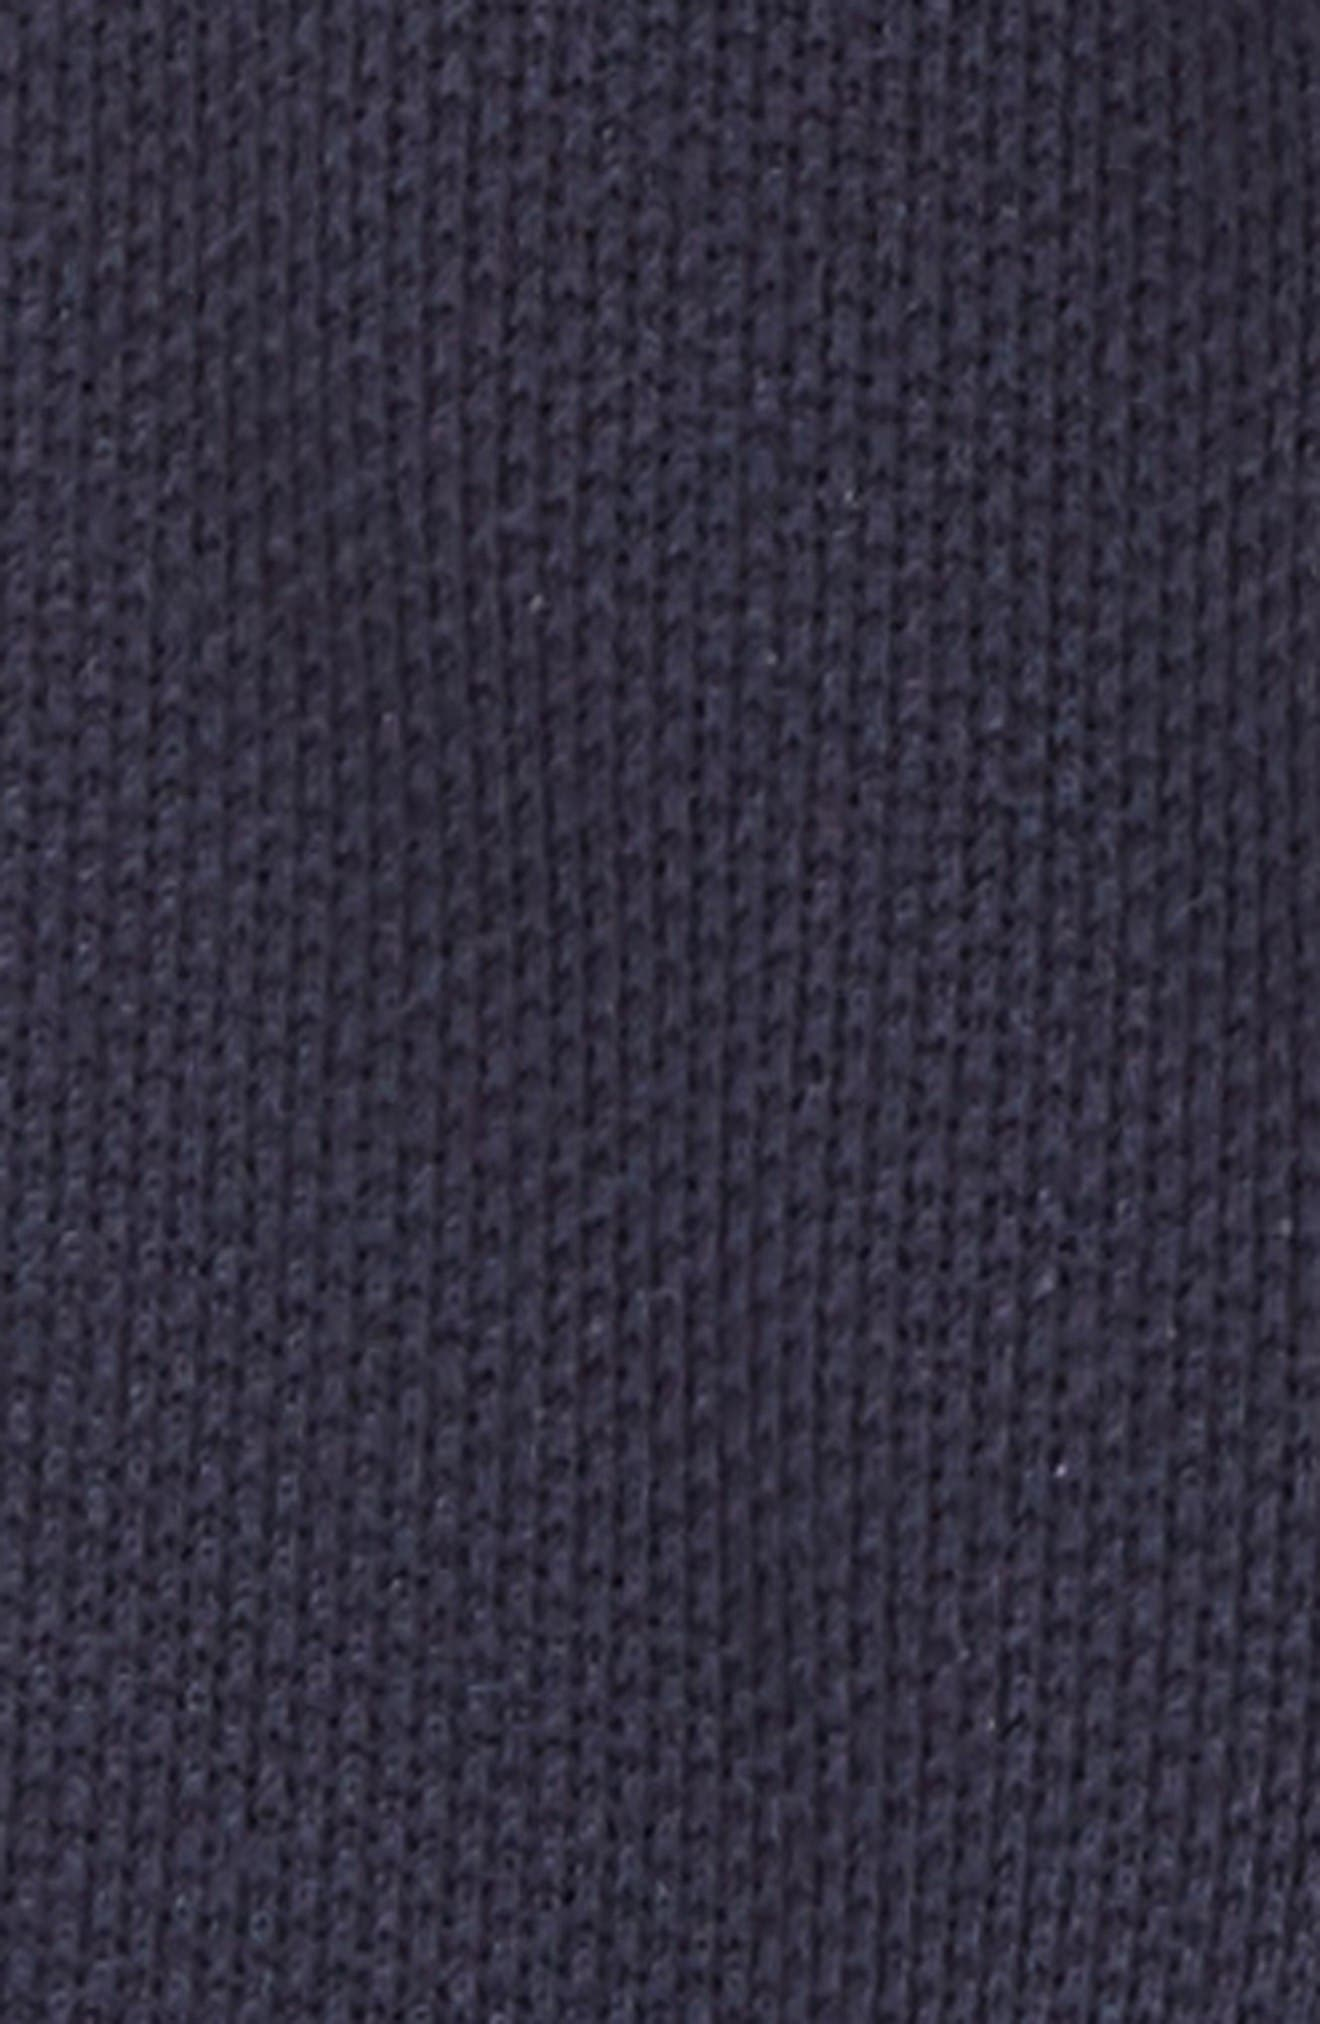 Knit Blazer with Pocket Square,                             Alternate thumbnail 2, color,                             Navy